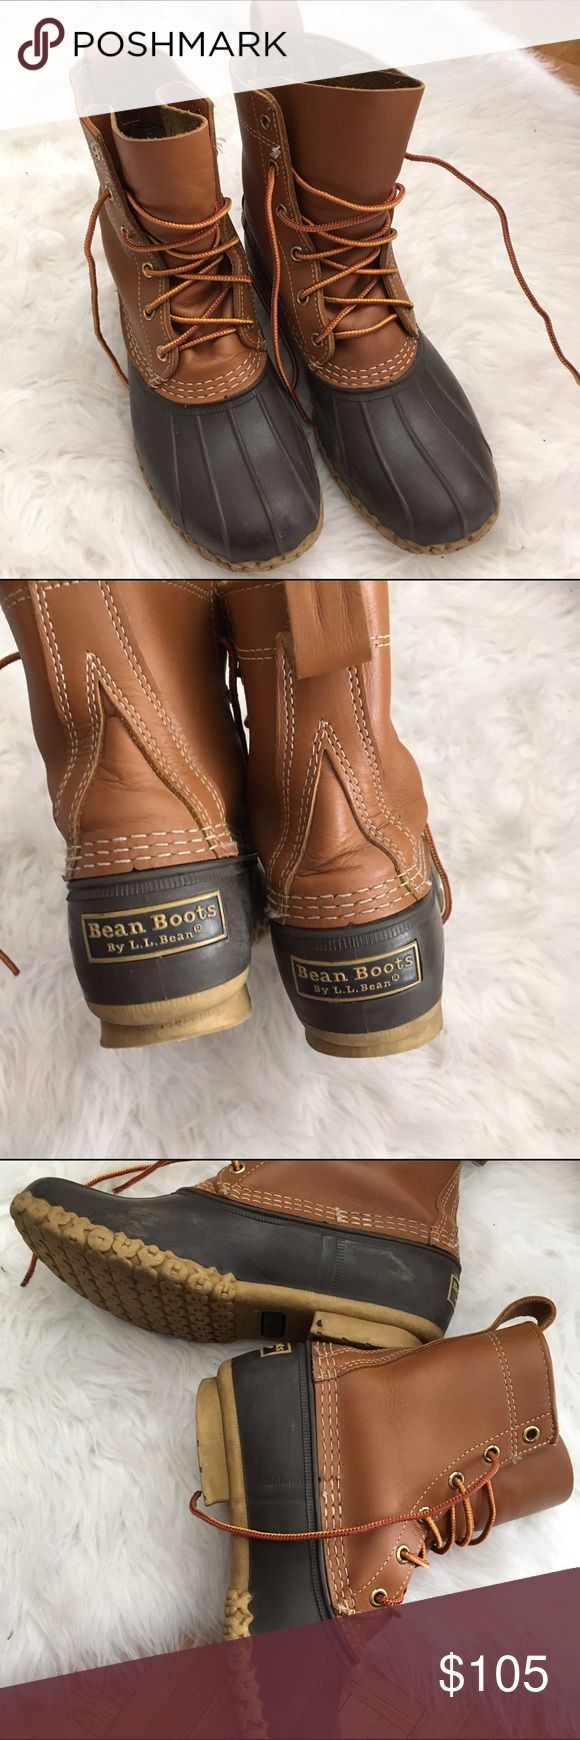 LL Bean Duck Boots Size 7 These are l.l. Bean boots in good condition. There is some scuffing on the inner sides as pictured. Would best suit a size 7.5 or 8 since they run large. These are the 8 inch versions. L.L. Bean Shoes Winter & Rain Boots